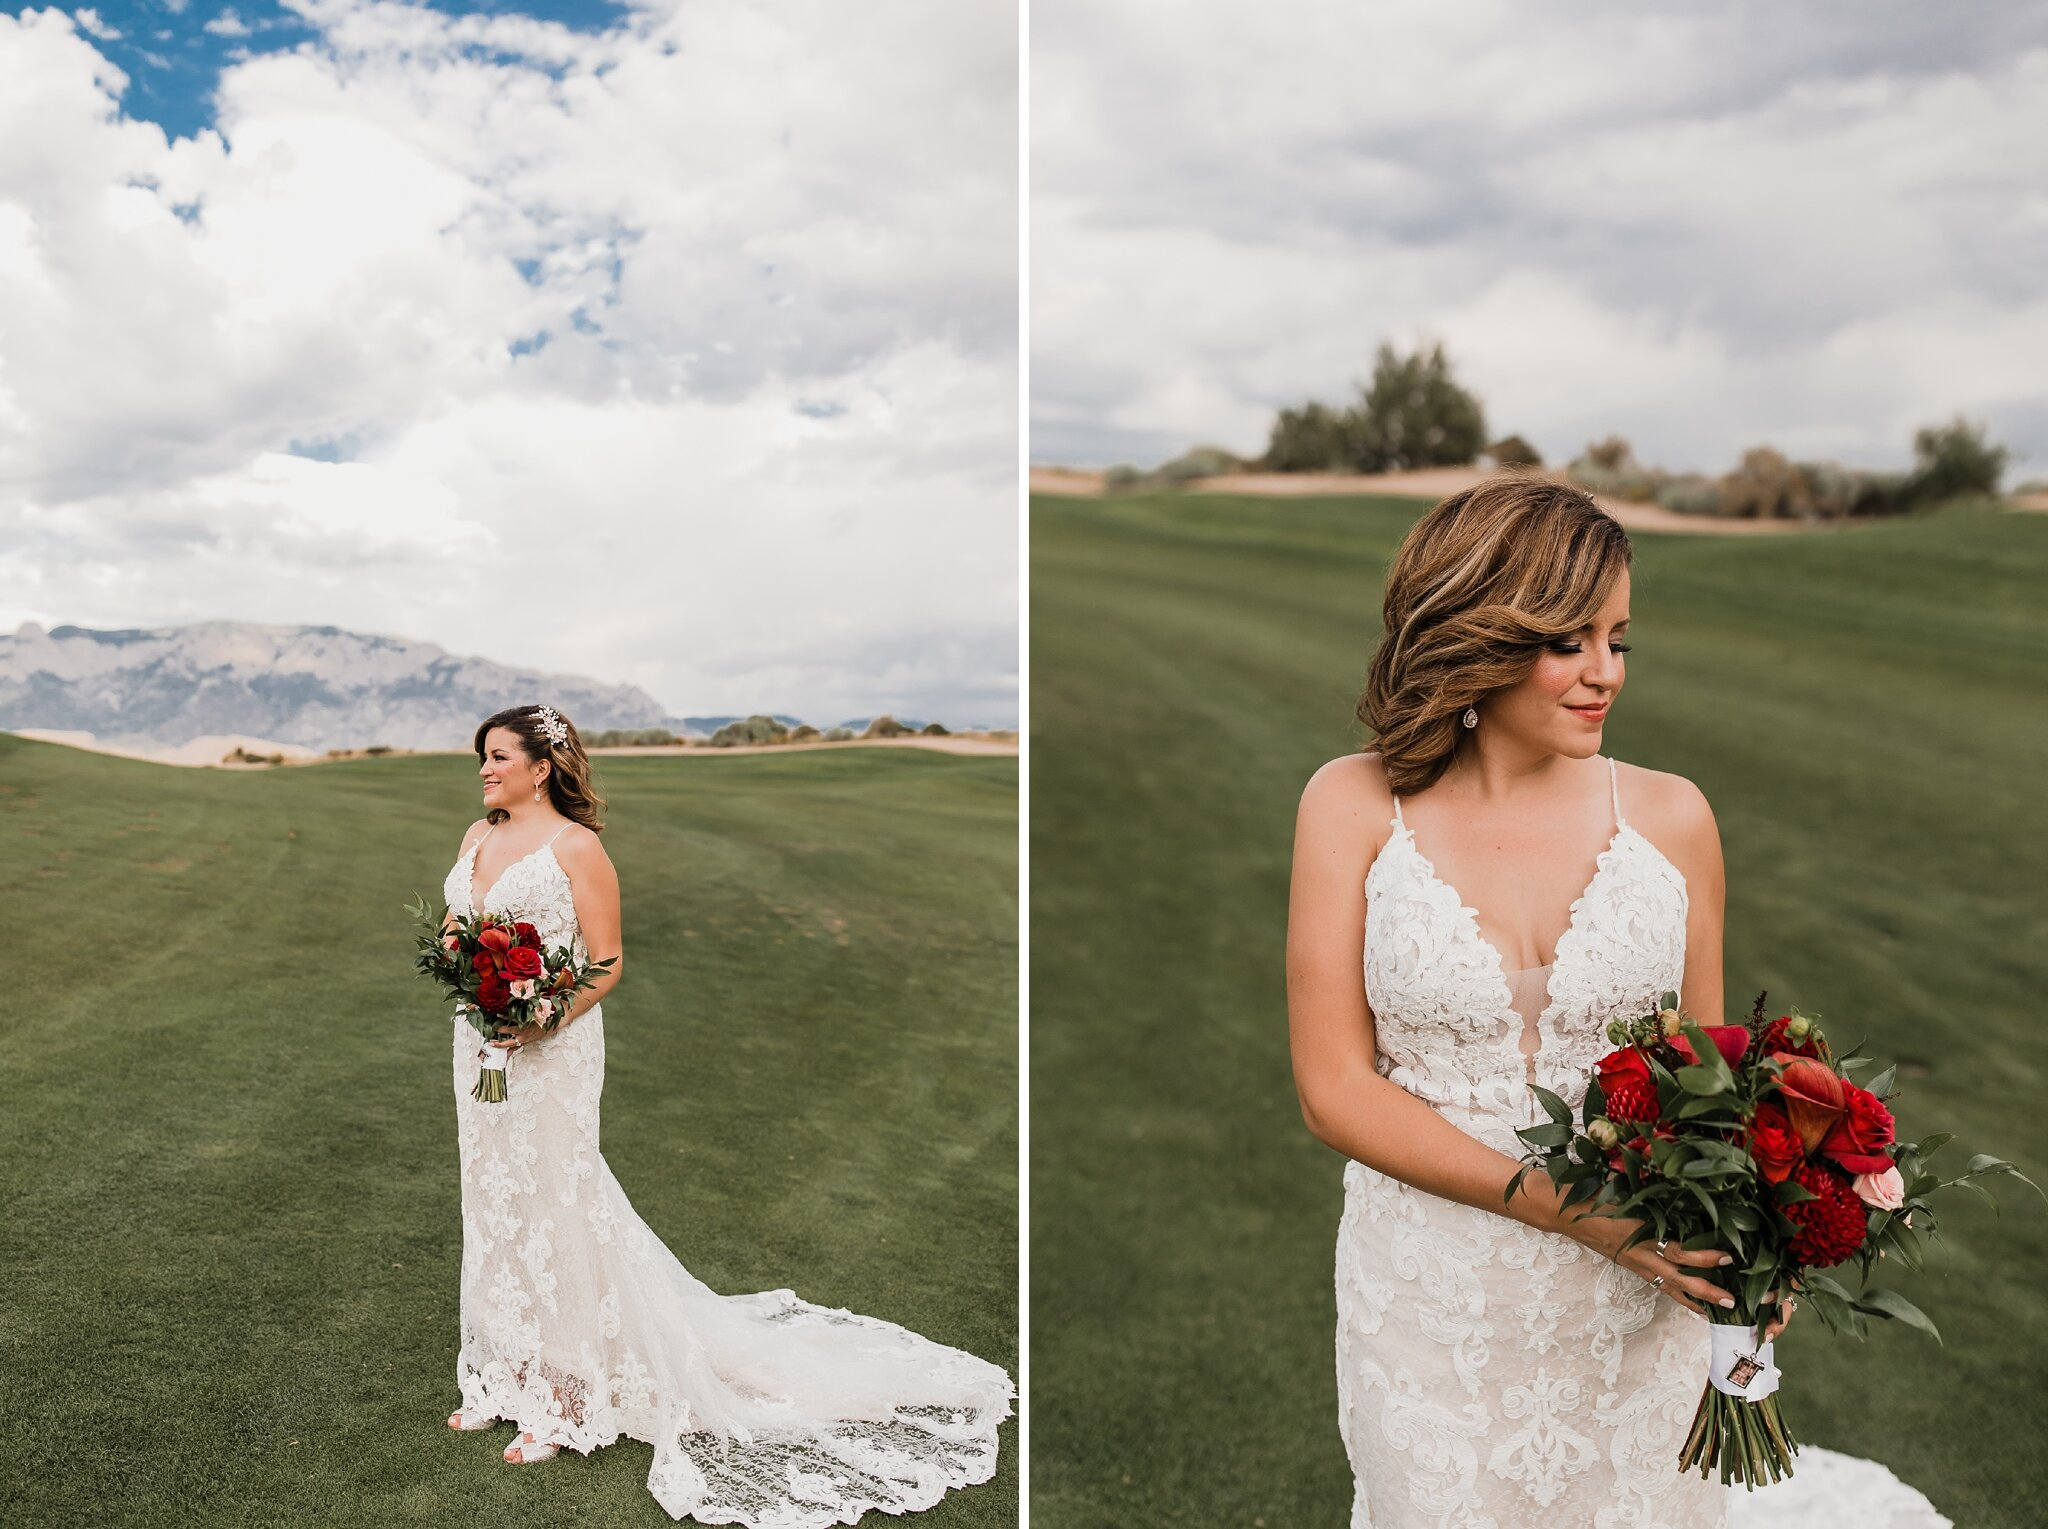 Alicia+lucia+photography+-+albuquerque+wedding+photographer+-+santa+fe+wedding+photography+-+new+mexico+wedding+photographer+-+new+mexico+wedding+-+albuquerque+wedding+-+sandia+wedding+-+sandia+event+center+wedding_0070.jpg